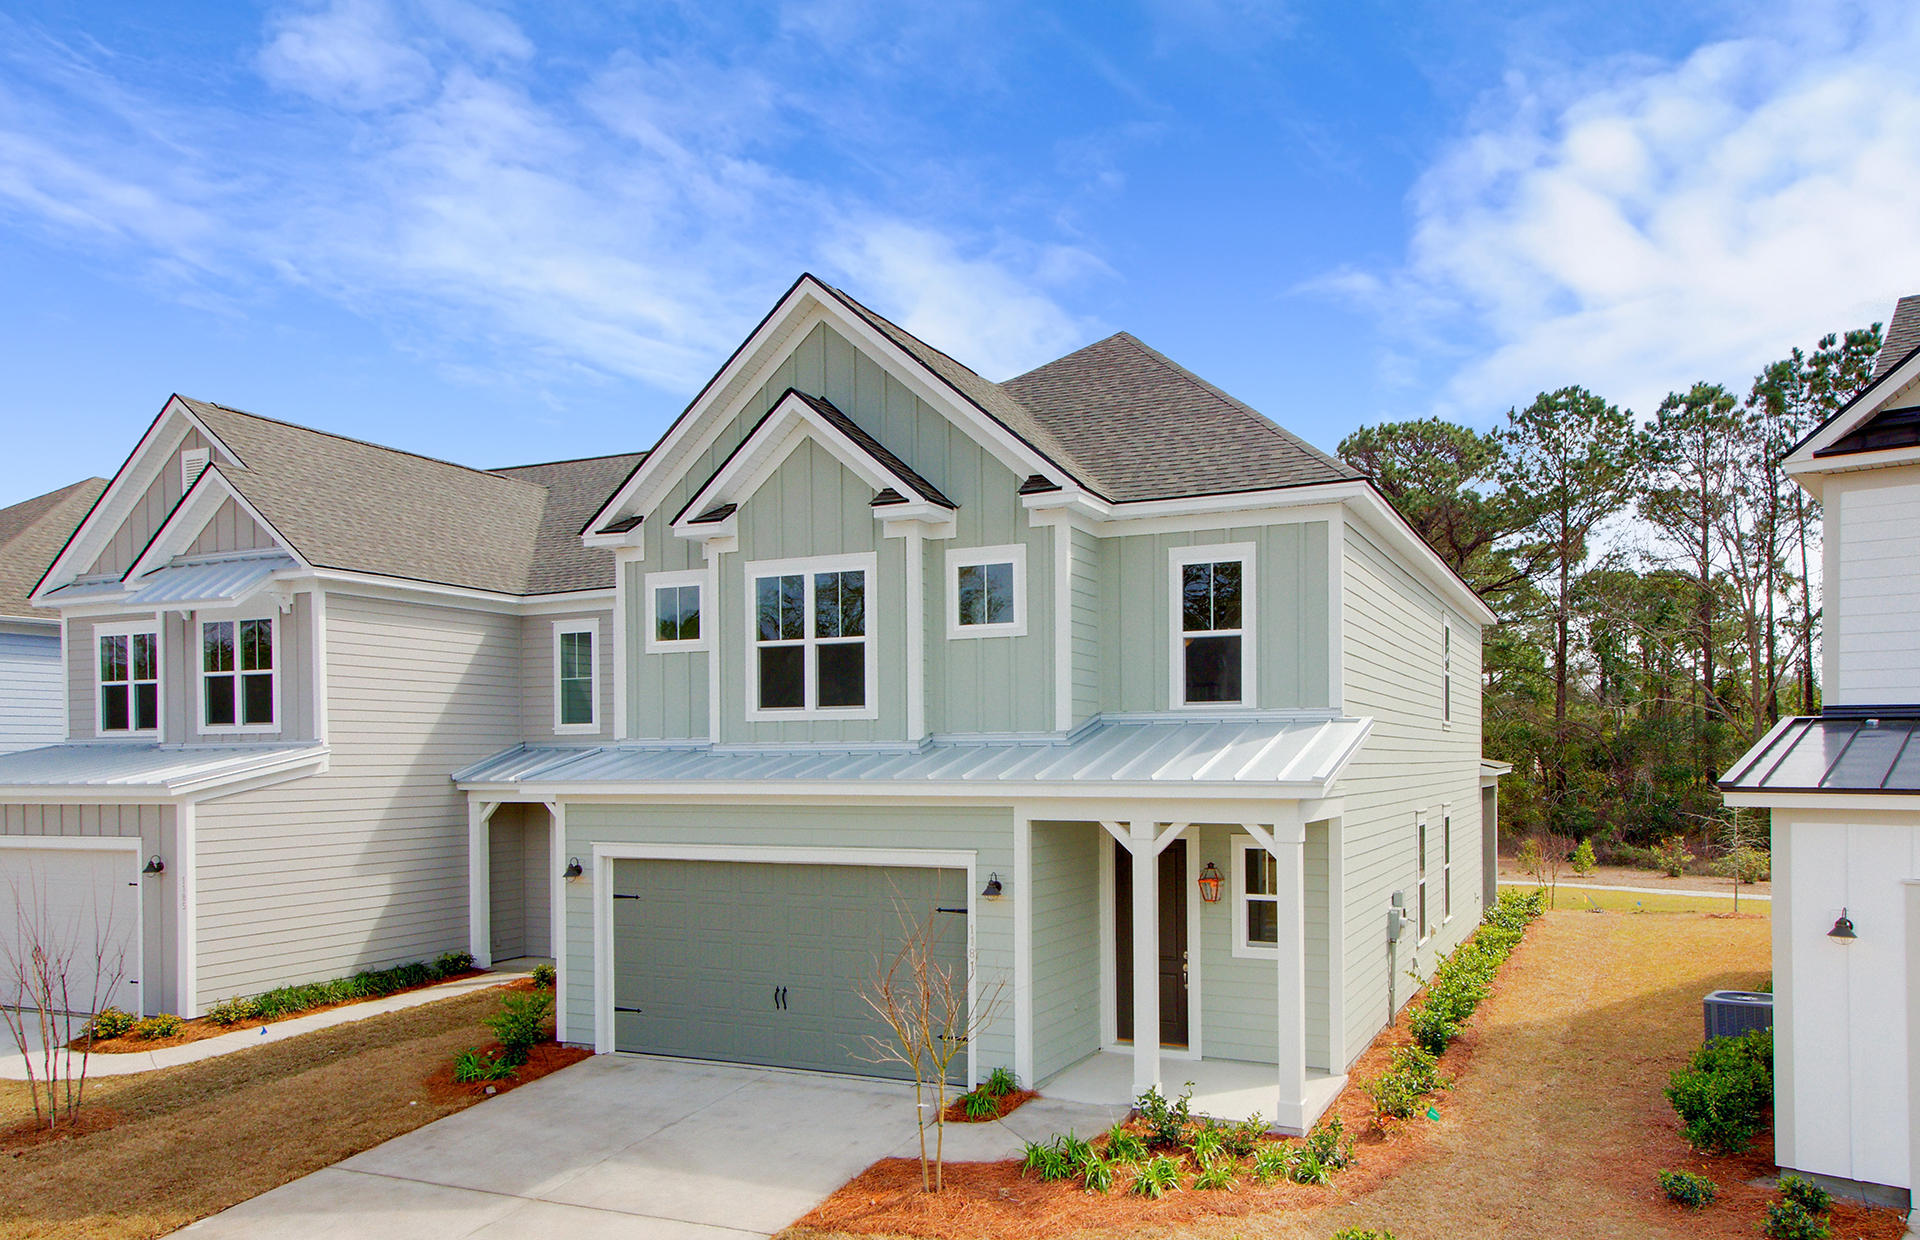 Pointe at Primus Homes For Sale - 1181 Penderlee, Mount Pleasant, SC - 13